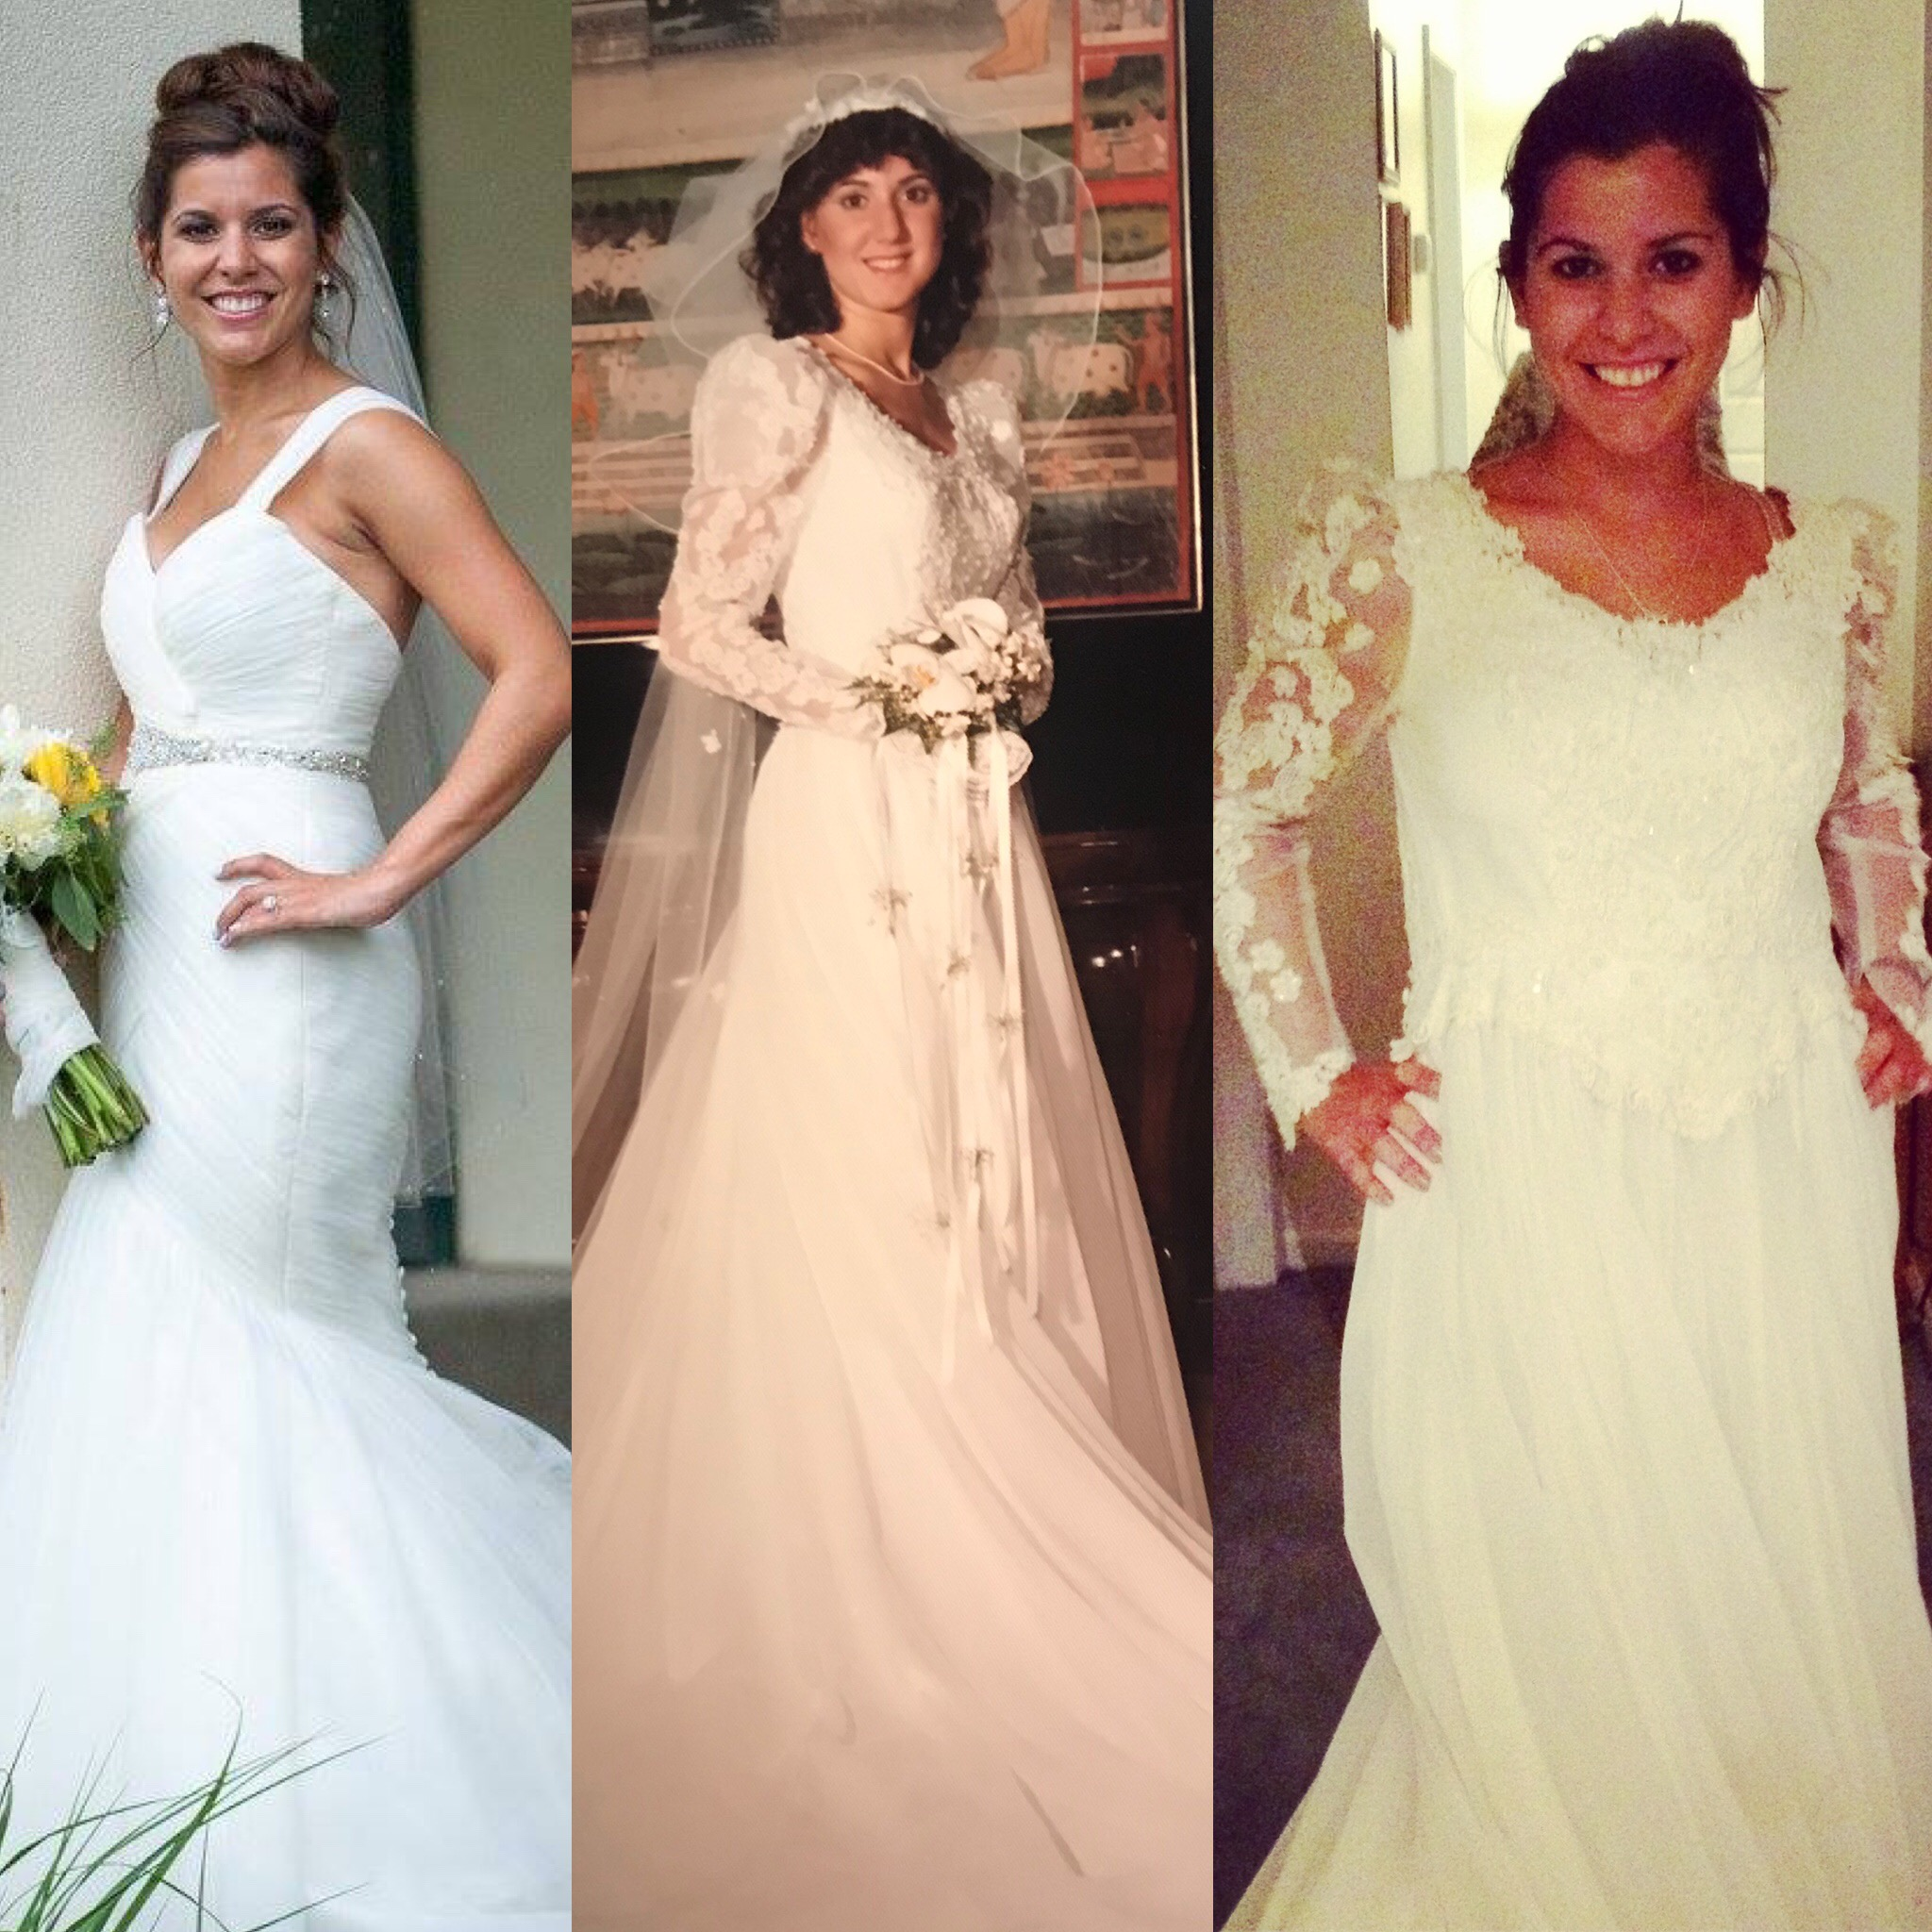 Take a look at these Kleinfeld brides and their moms in their wedding dresses on their wedding day in honor of Mother's Day!